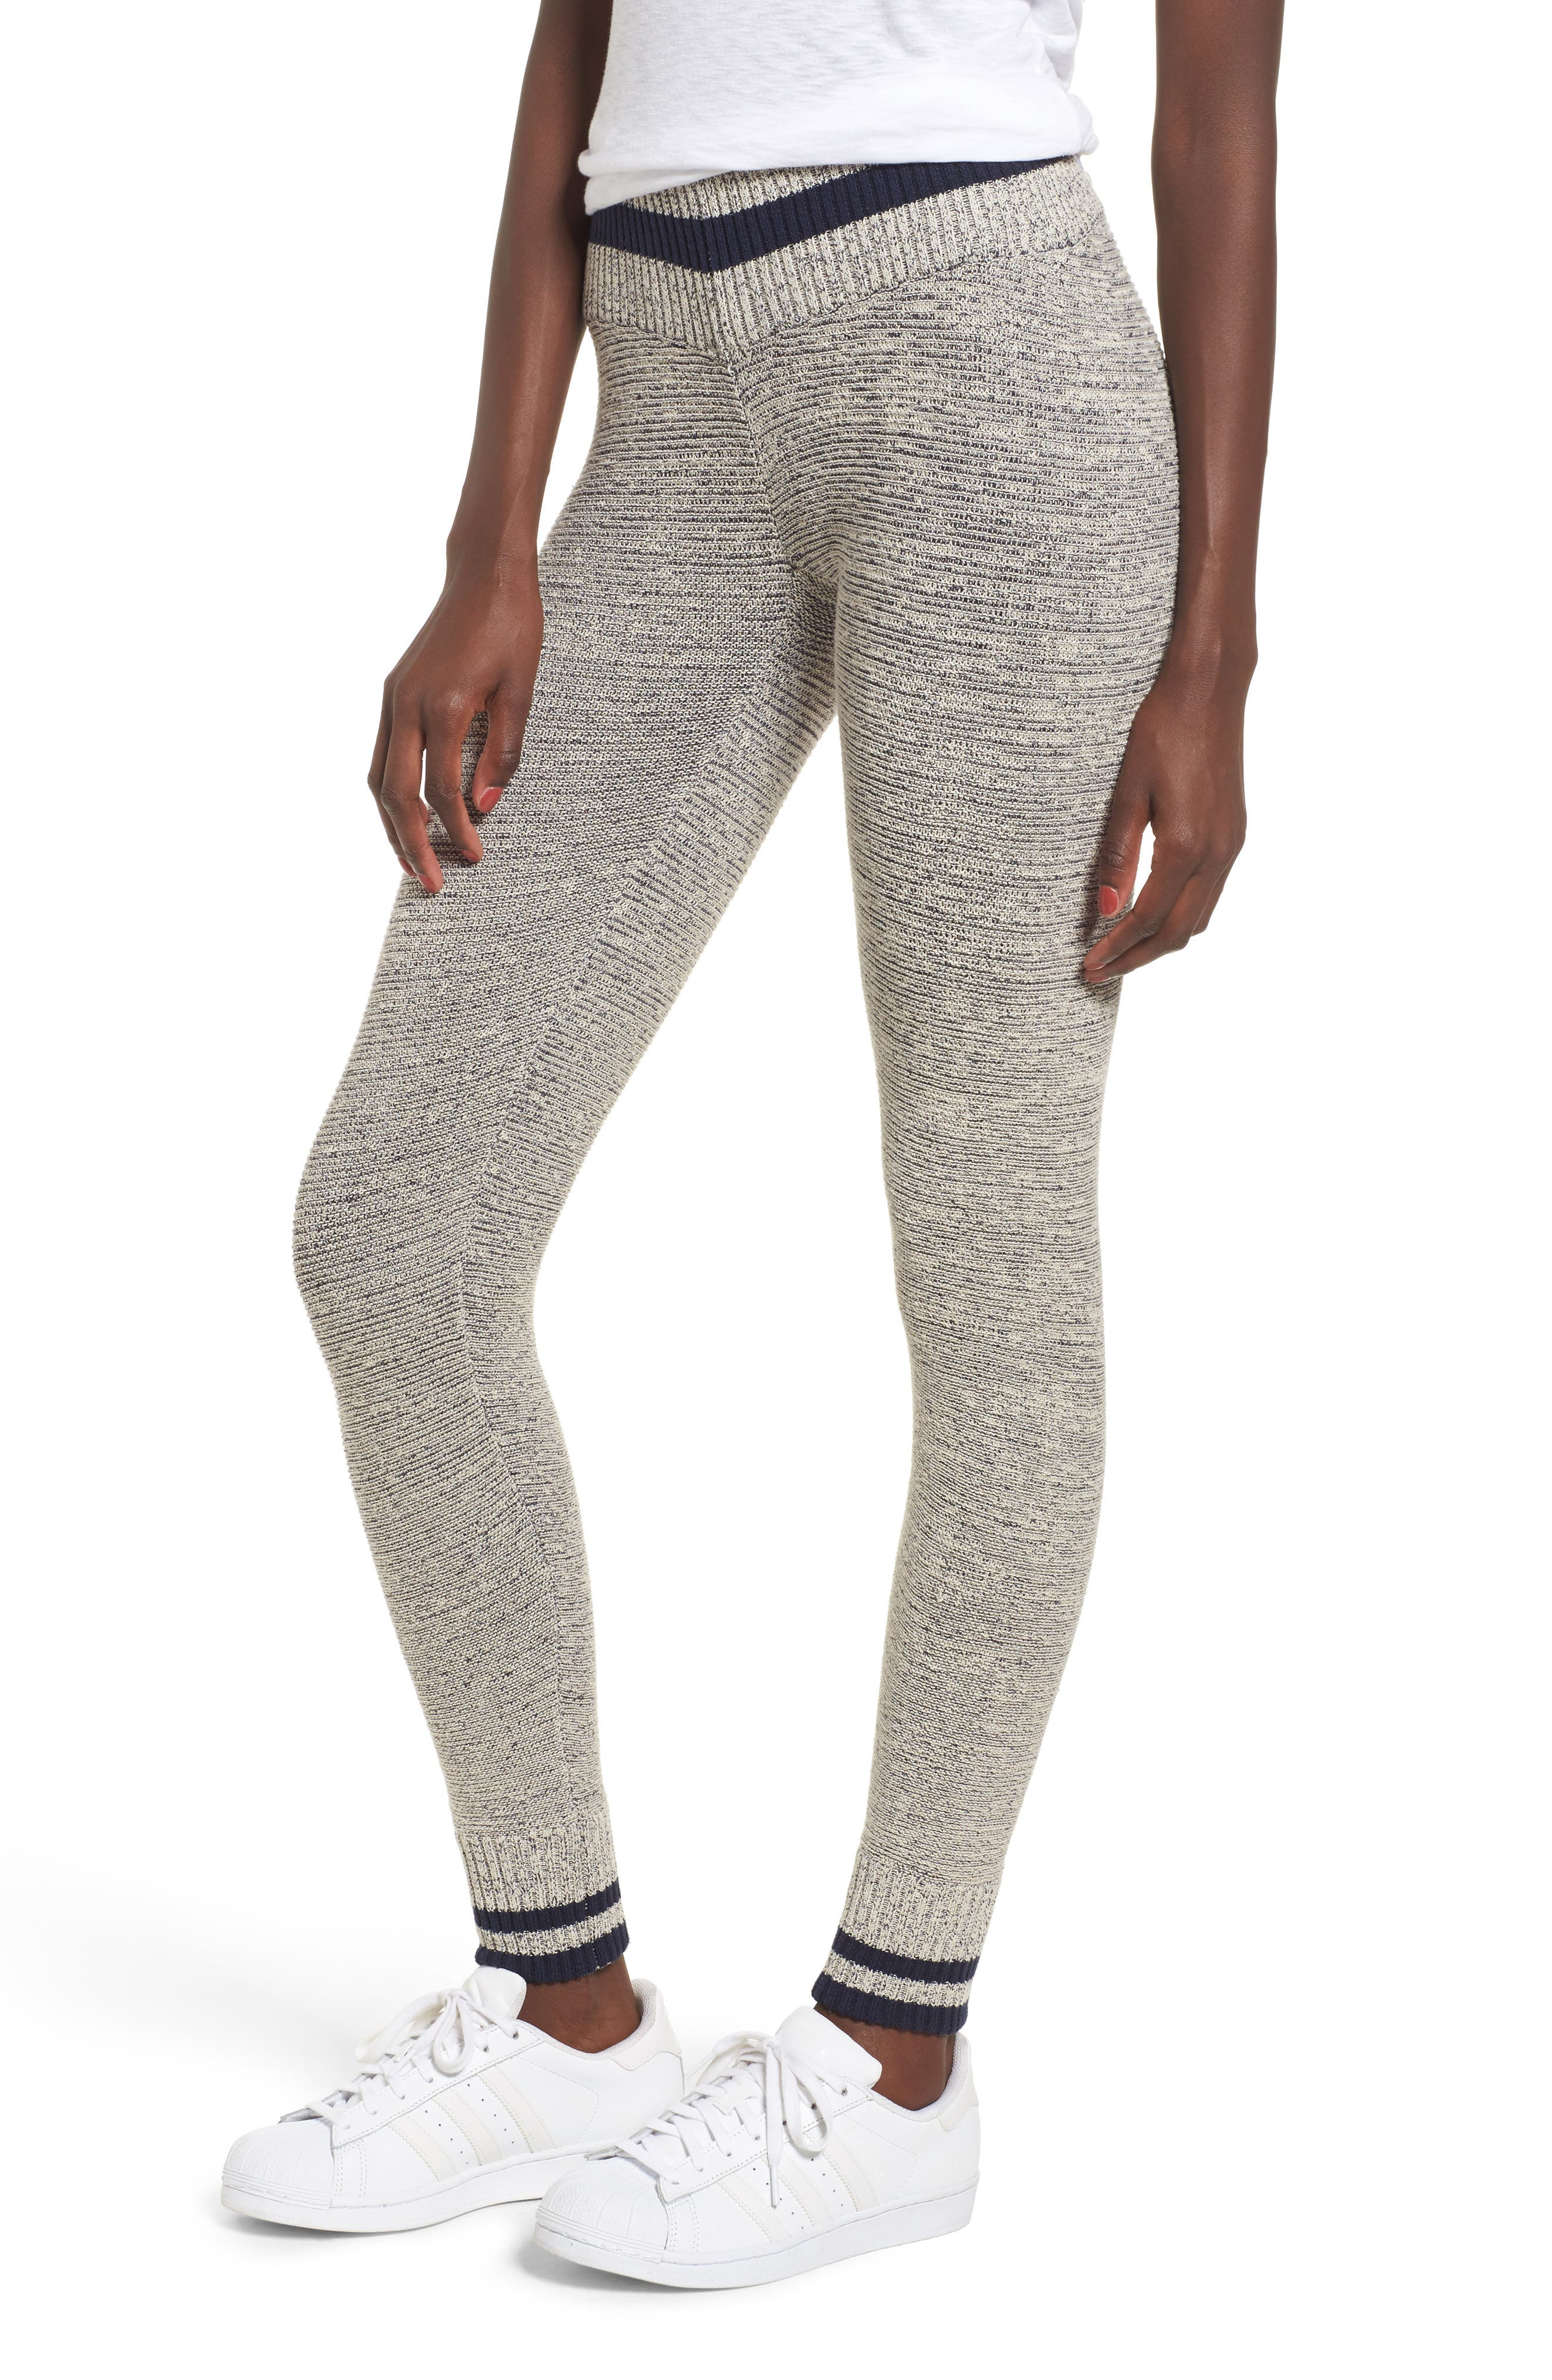 RVCA Loomed Knit Leggings